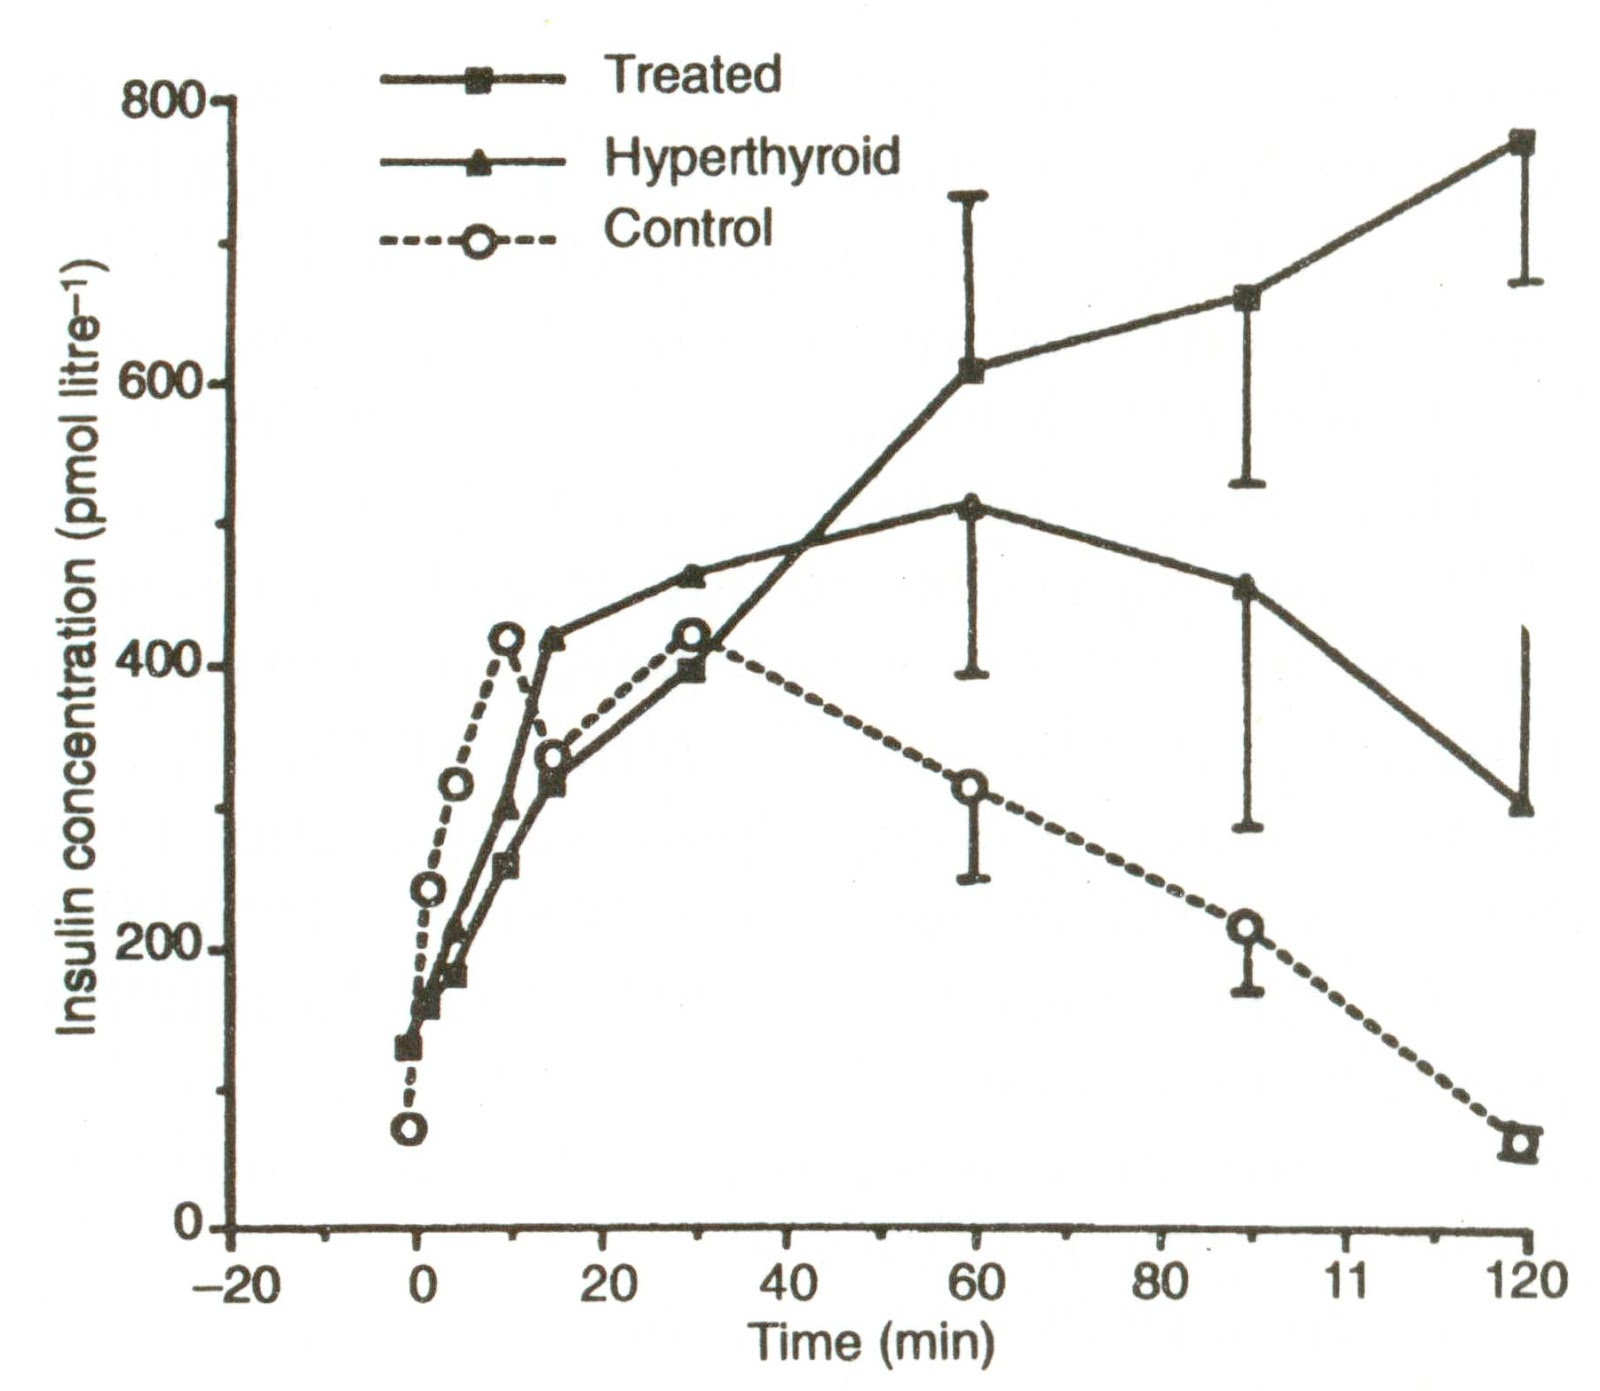 serum insulin concentrations in response to intravenous glucose tolerance test in 11 healthy cats 15 cats with untreated hyperthyroidism  [ 1600 x 1391 Pixel ]